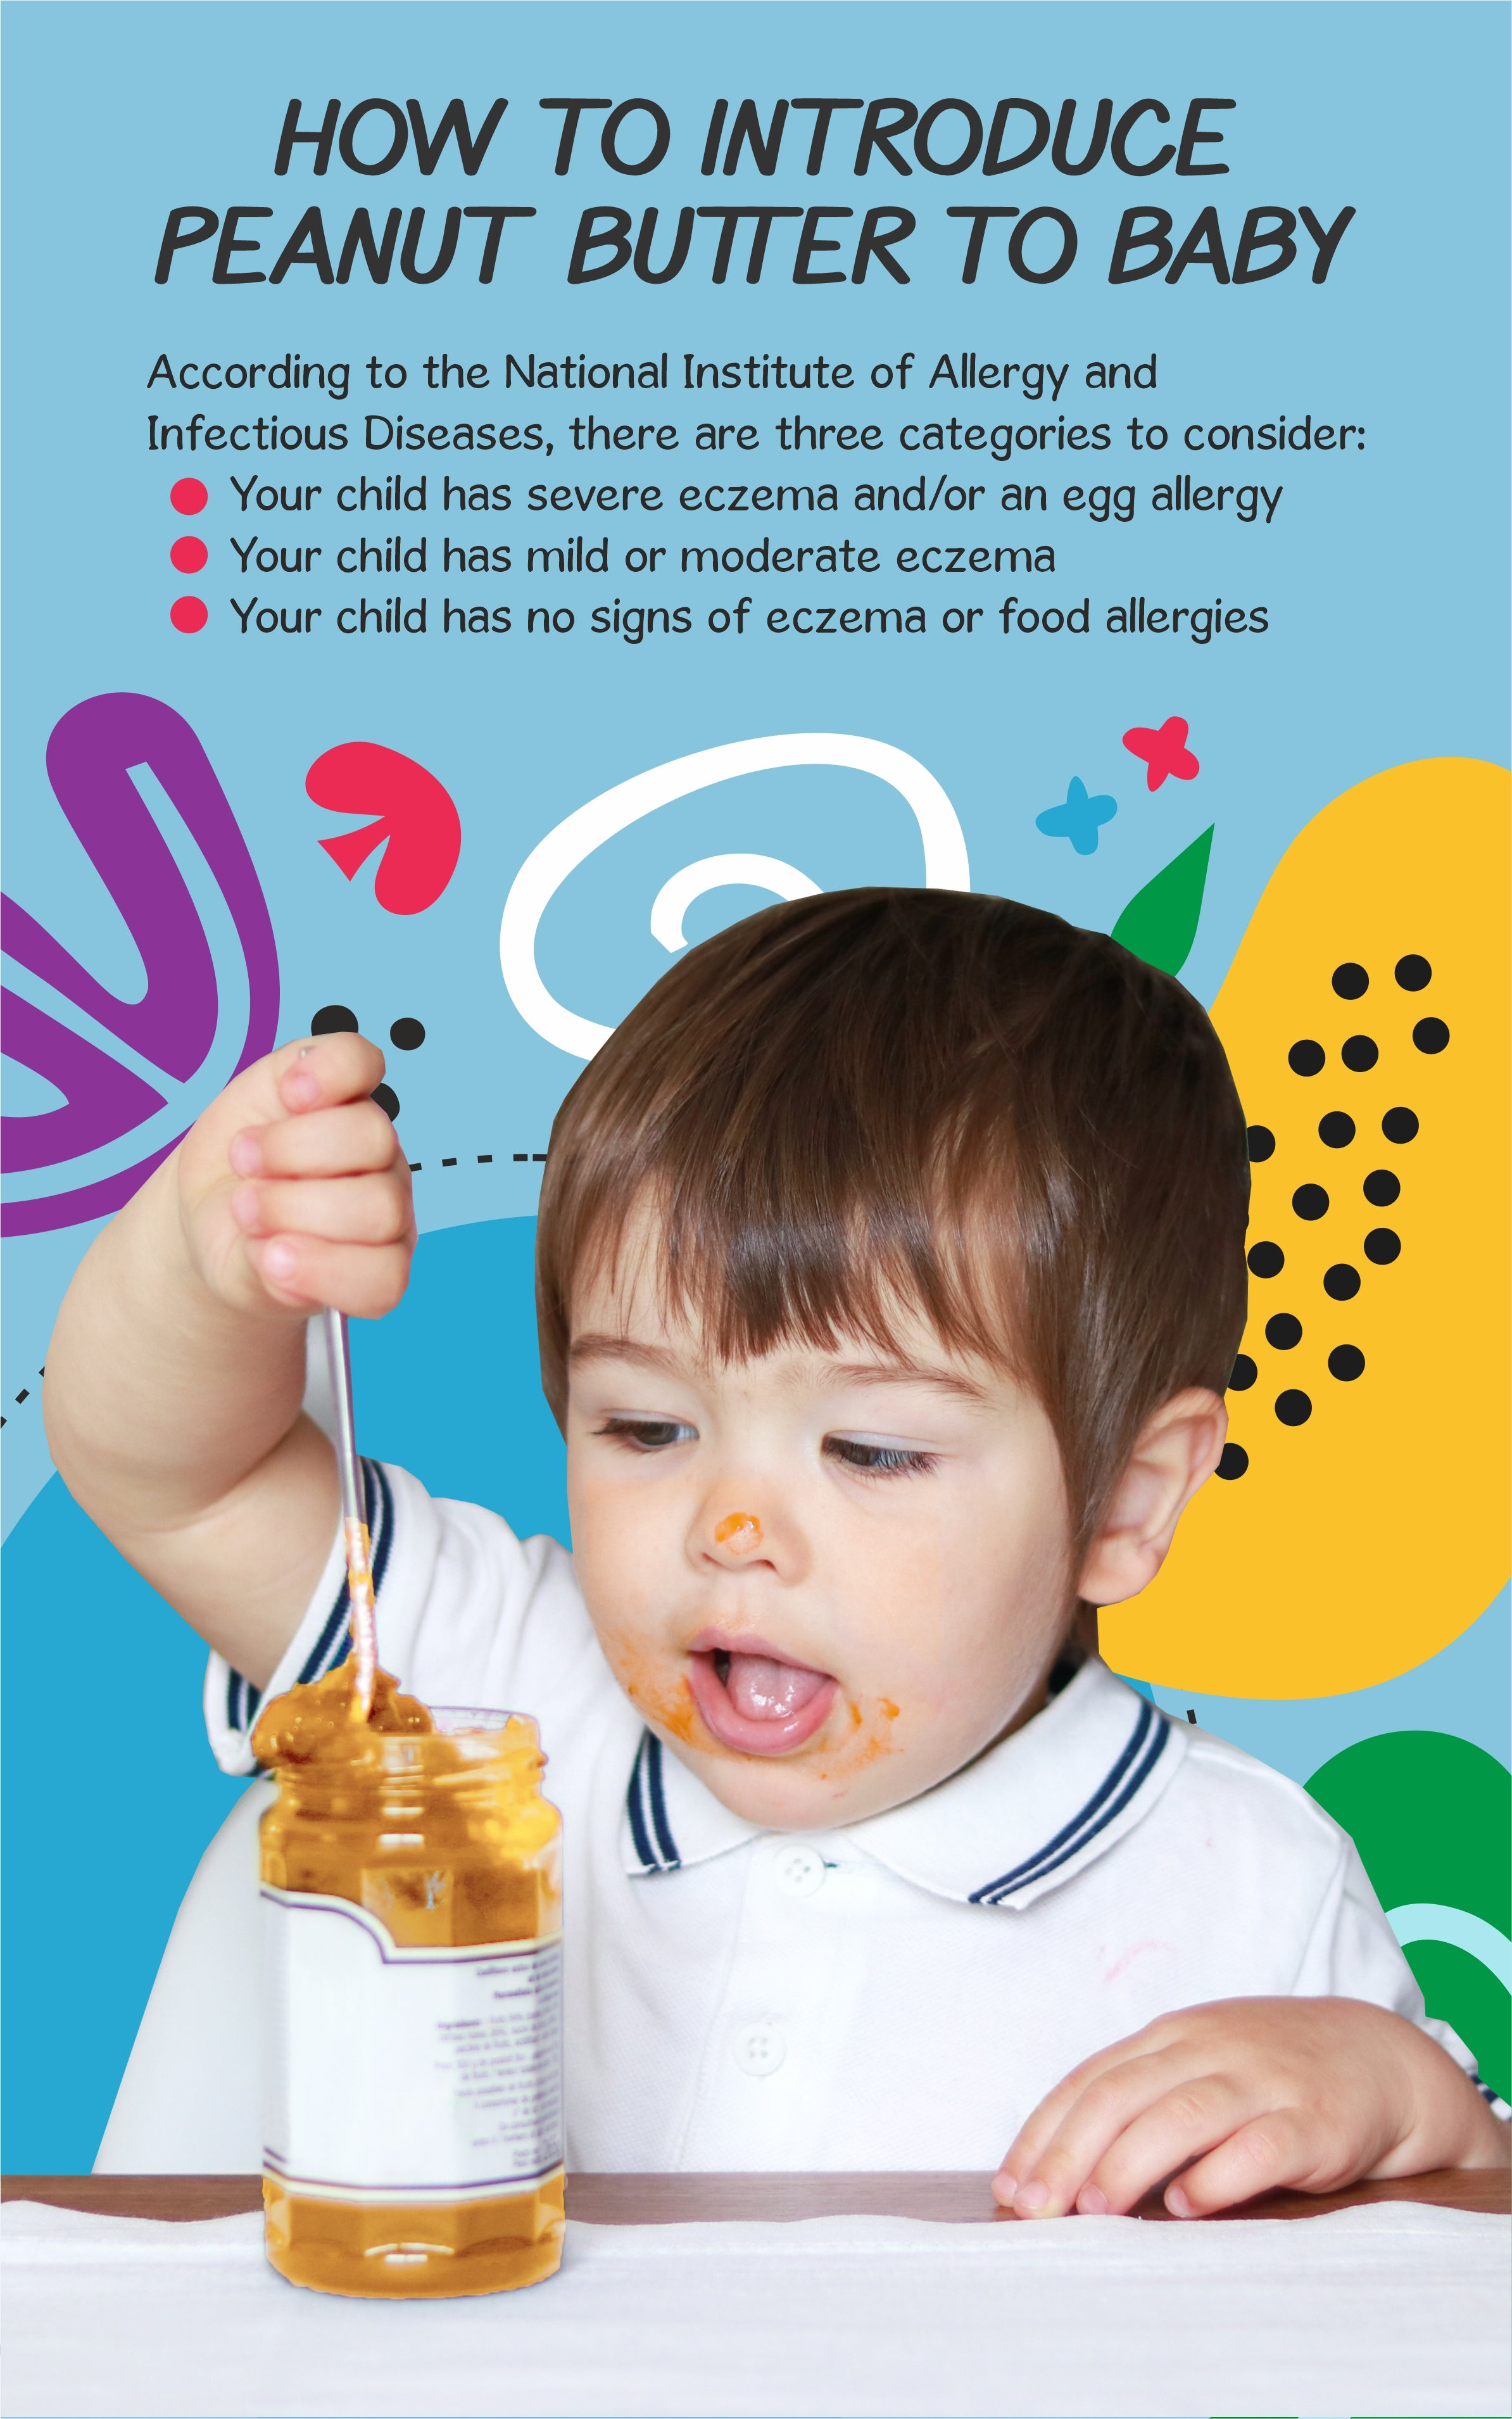 How to Introduce Peanut Butter to Baby